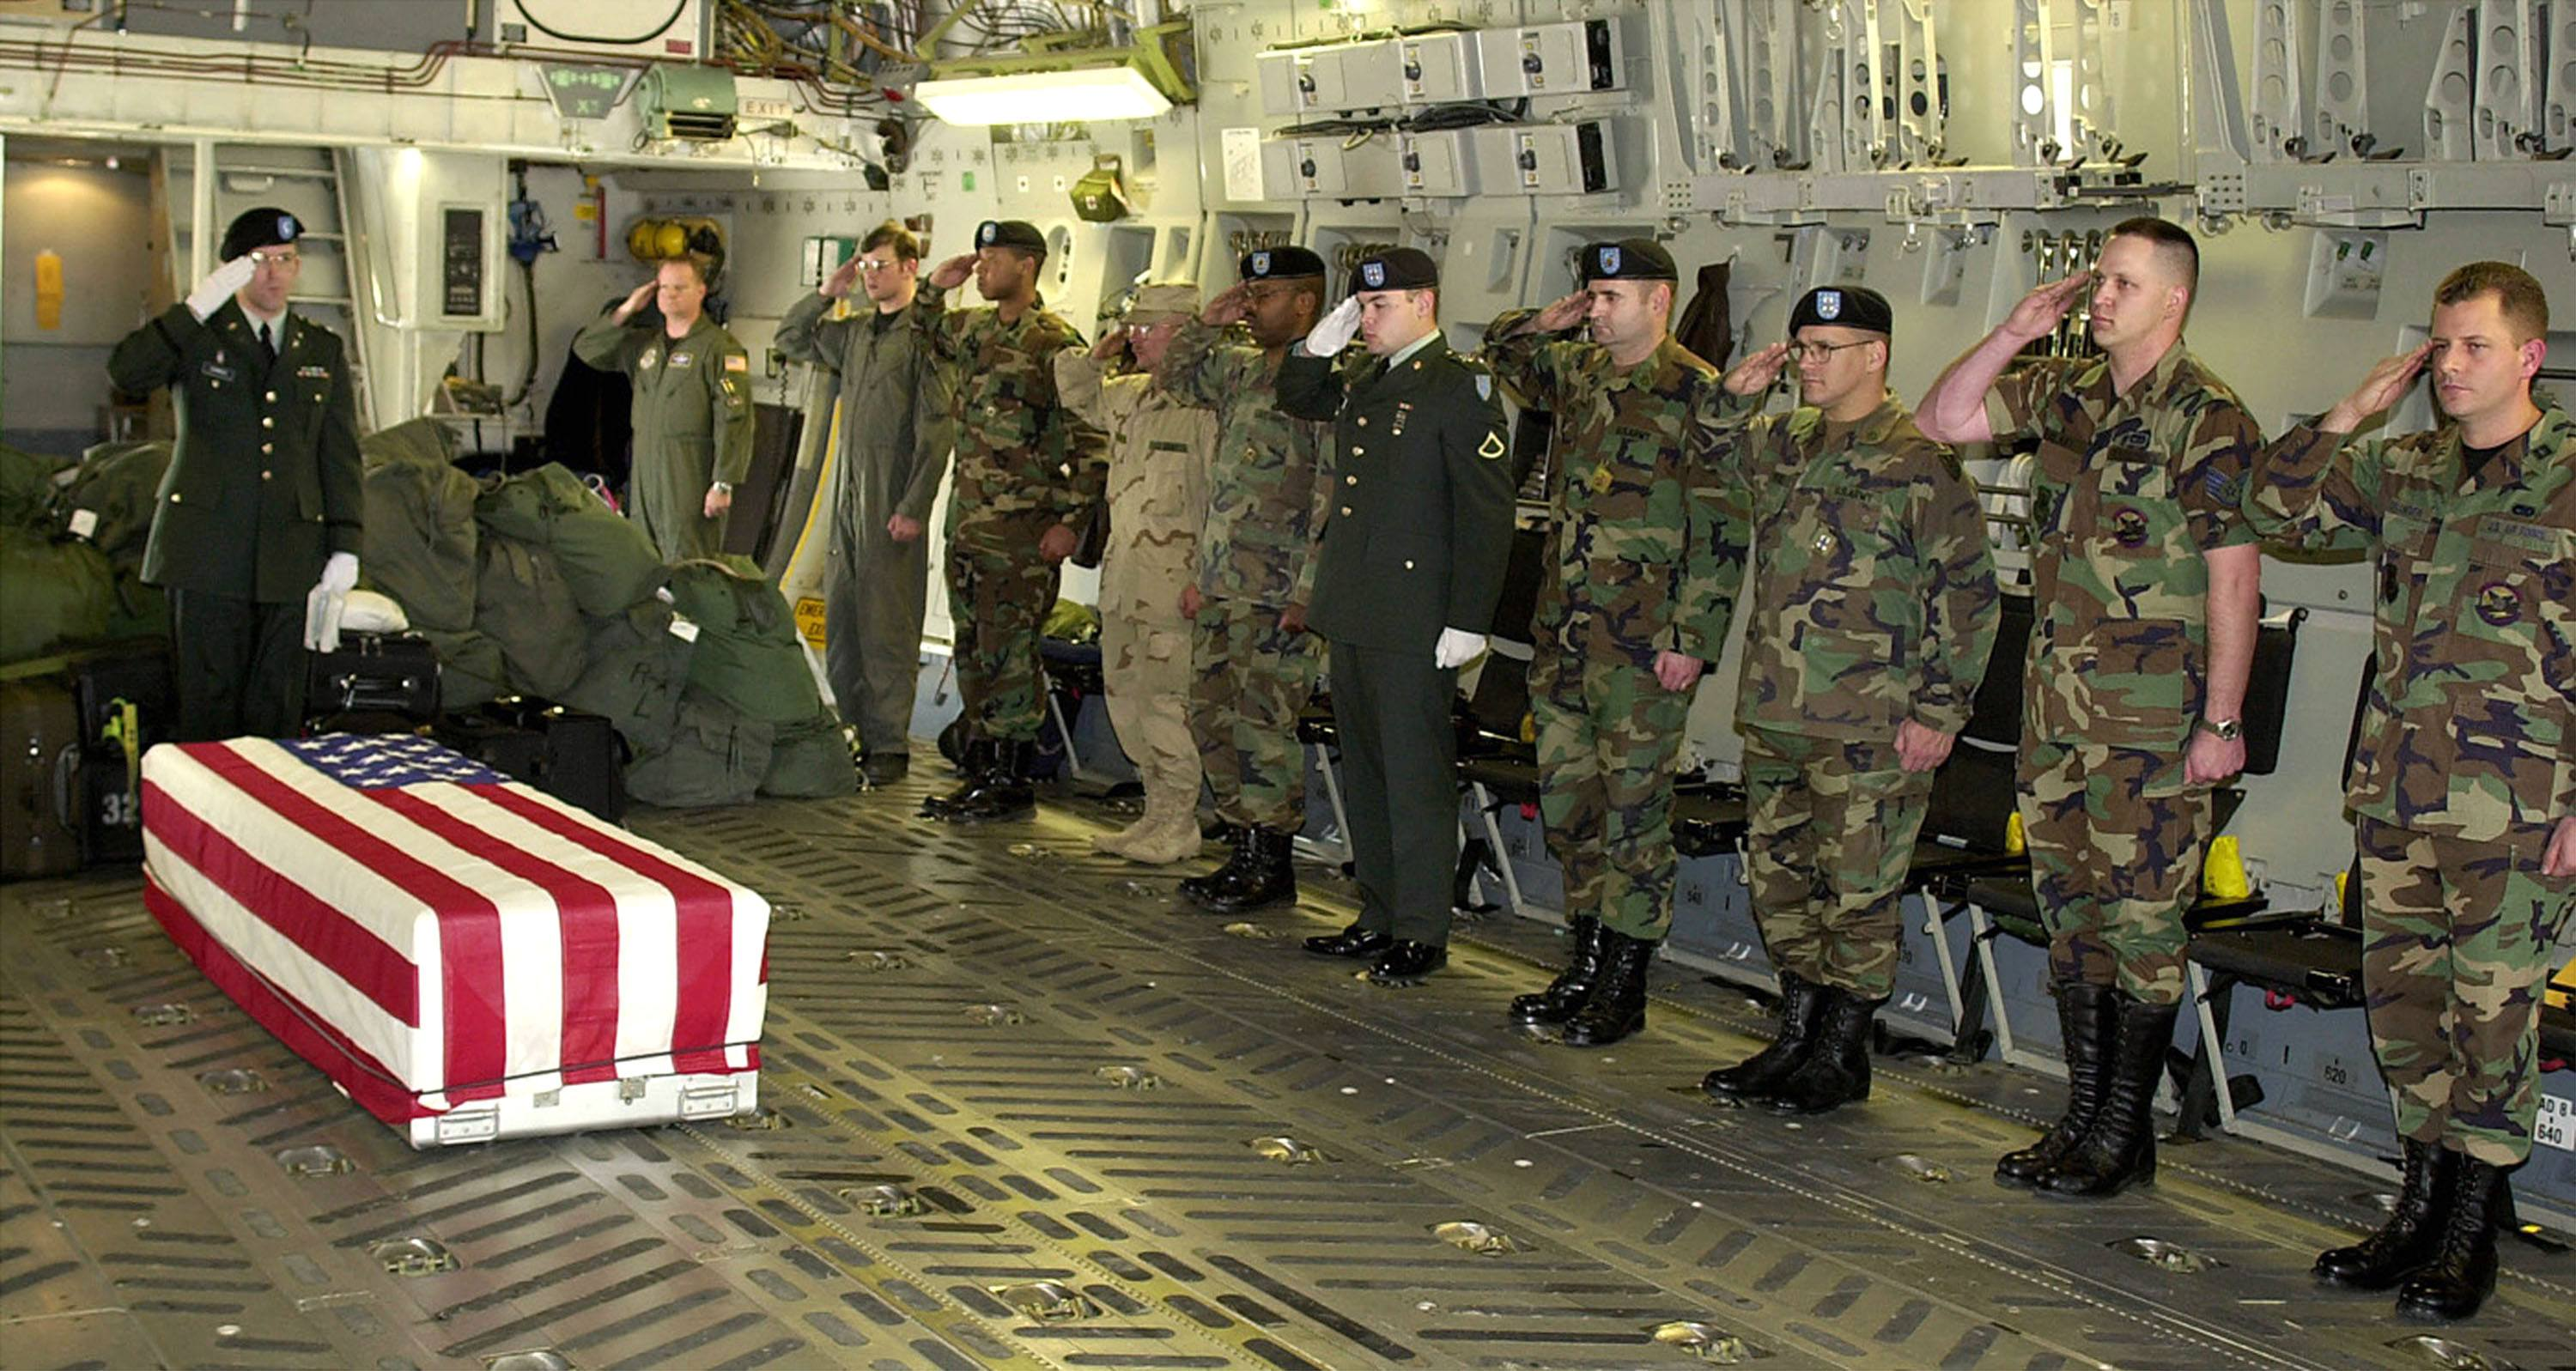 Military Personnel Pay Their Respects To Chief Petty Officer Matthew J Bourgeois 35 Of